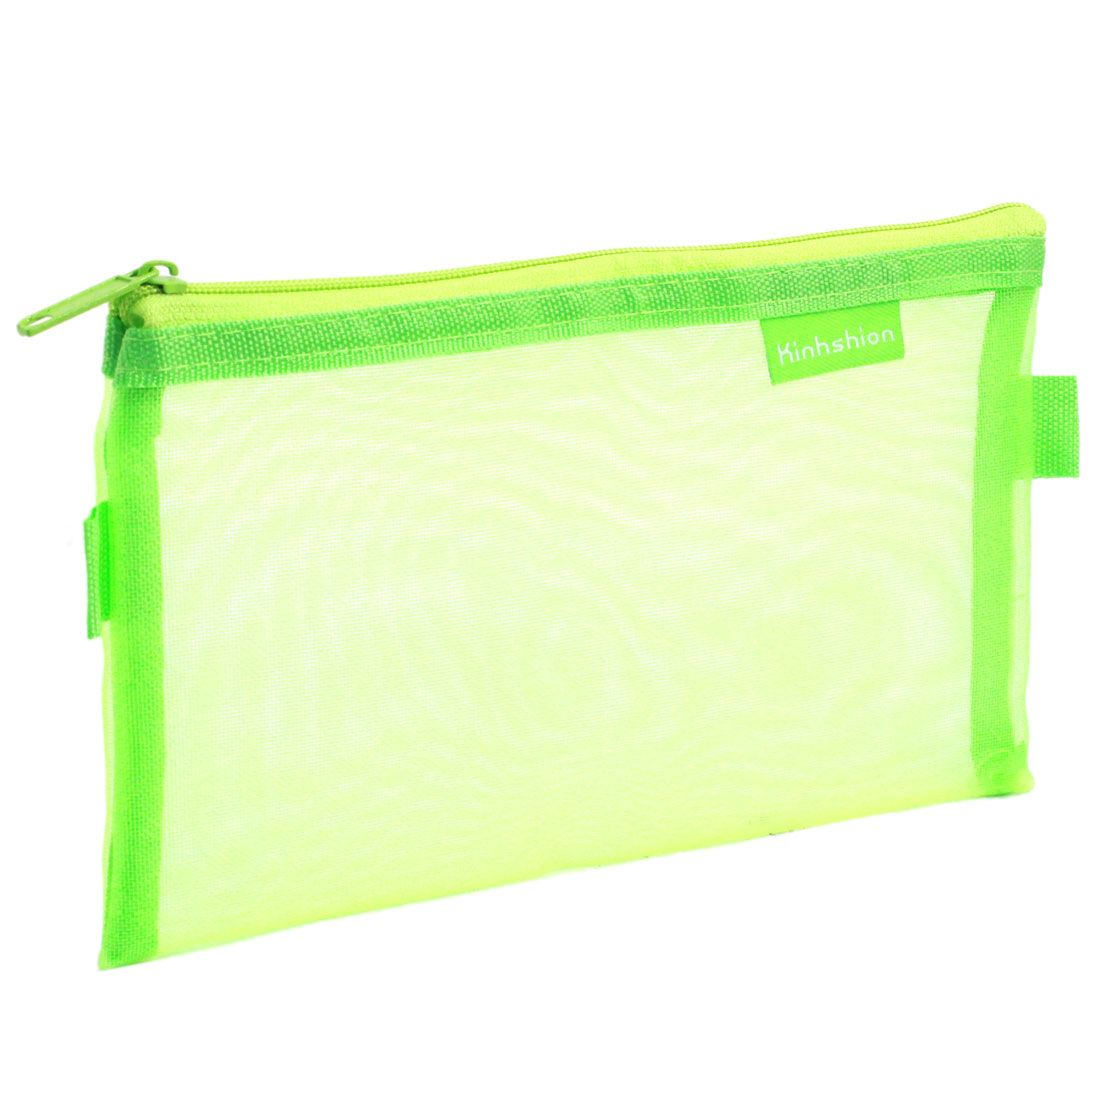 Zip up Nylon Mesh Pencil Pen Stationary Holder Case Bag Green for Students